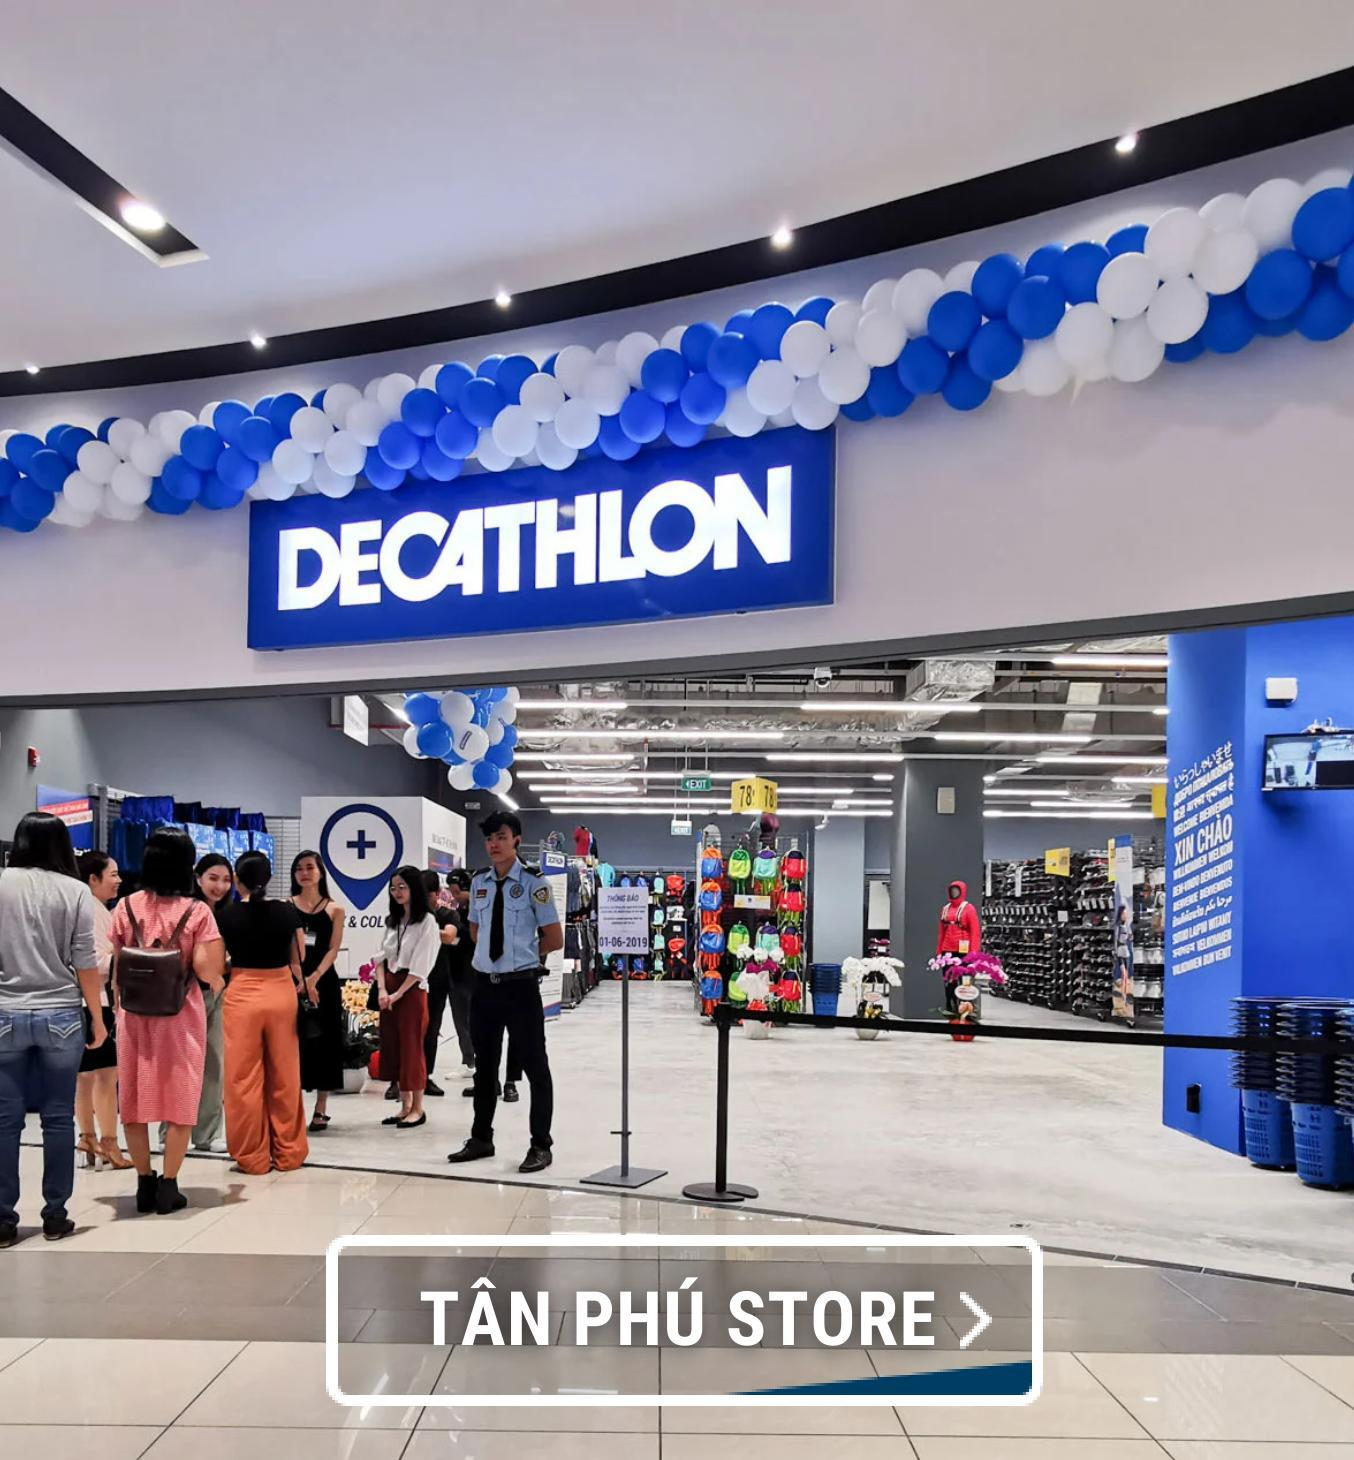 Click&collect, click and collect, partnership, delivery partner, tanphustore, decathlon store